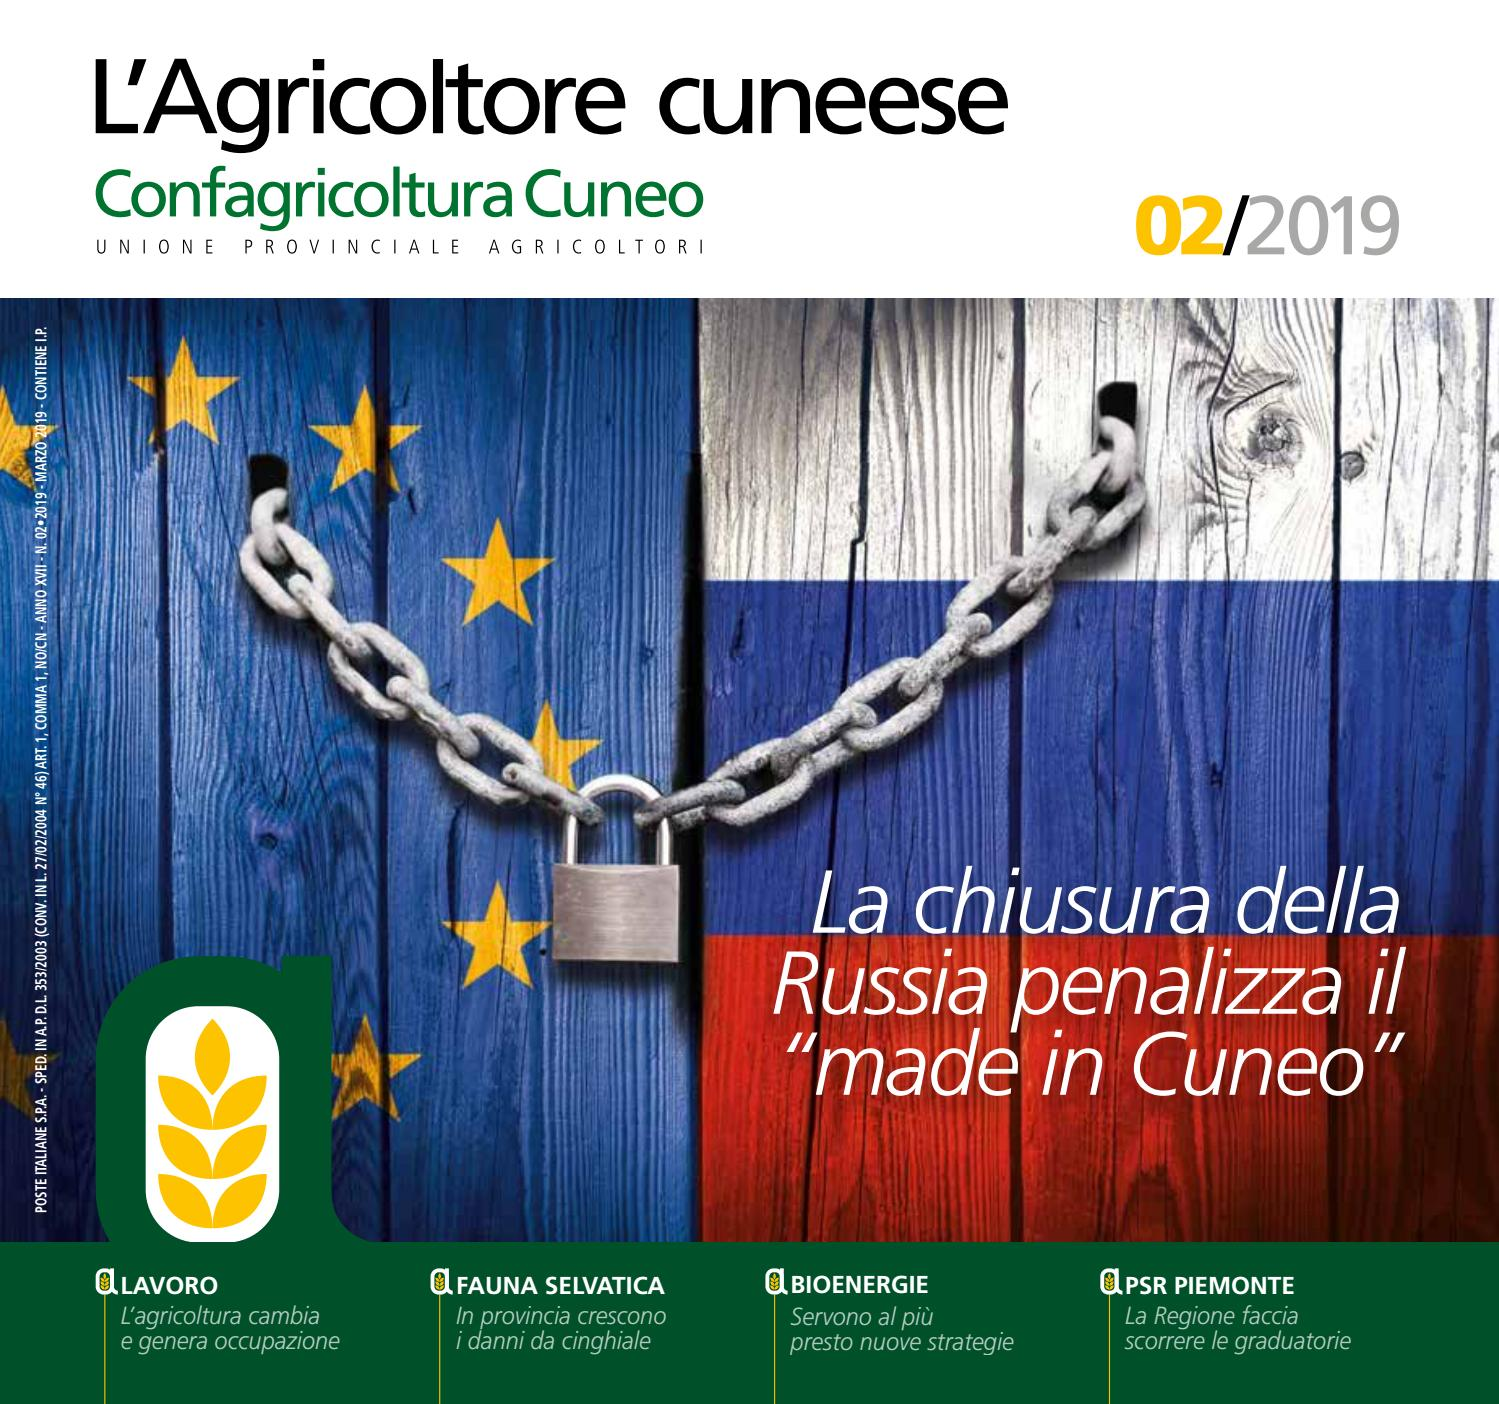 By N L'agricoltore Issuu Cuneese Confagricoltura 22019 Cuneo Ok80nwPX